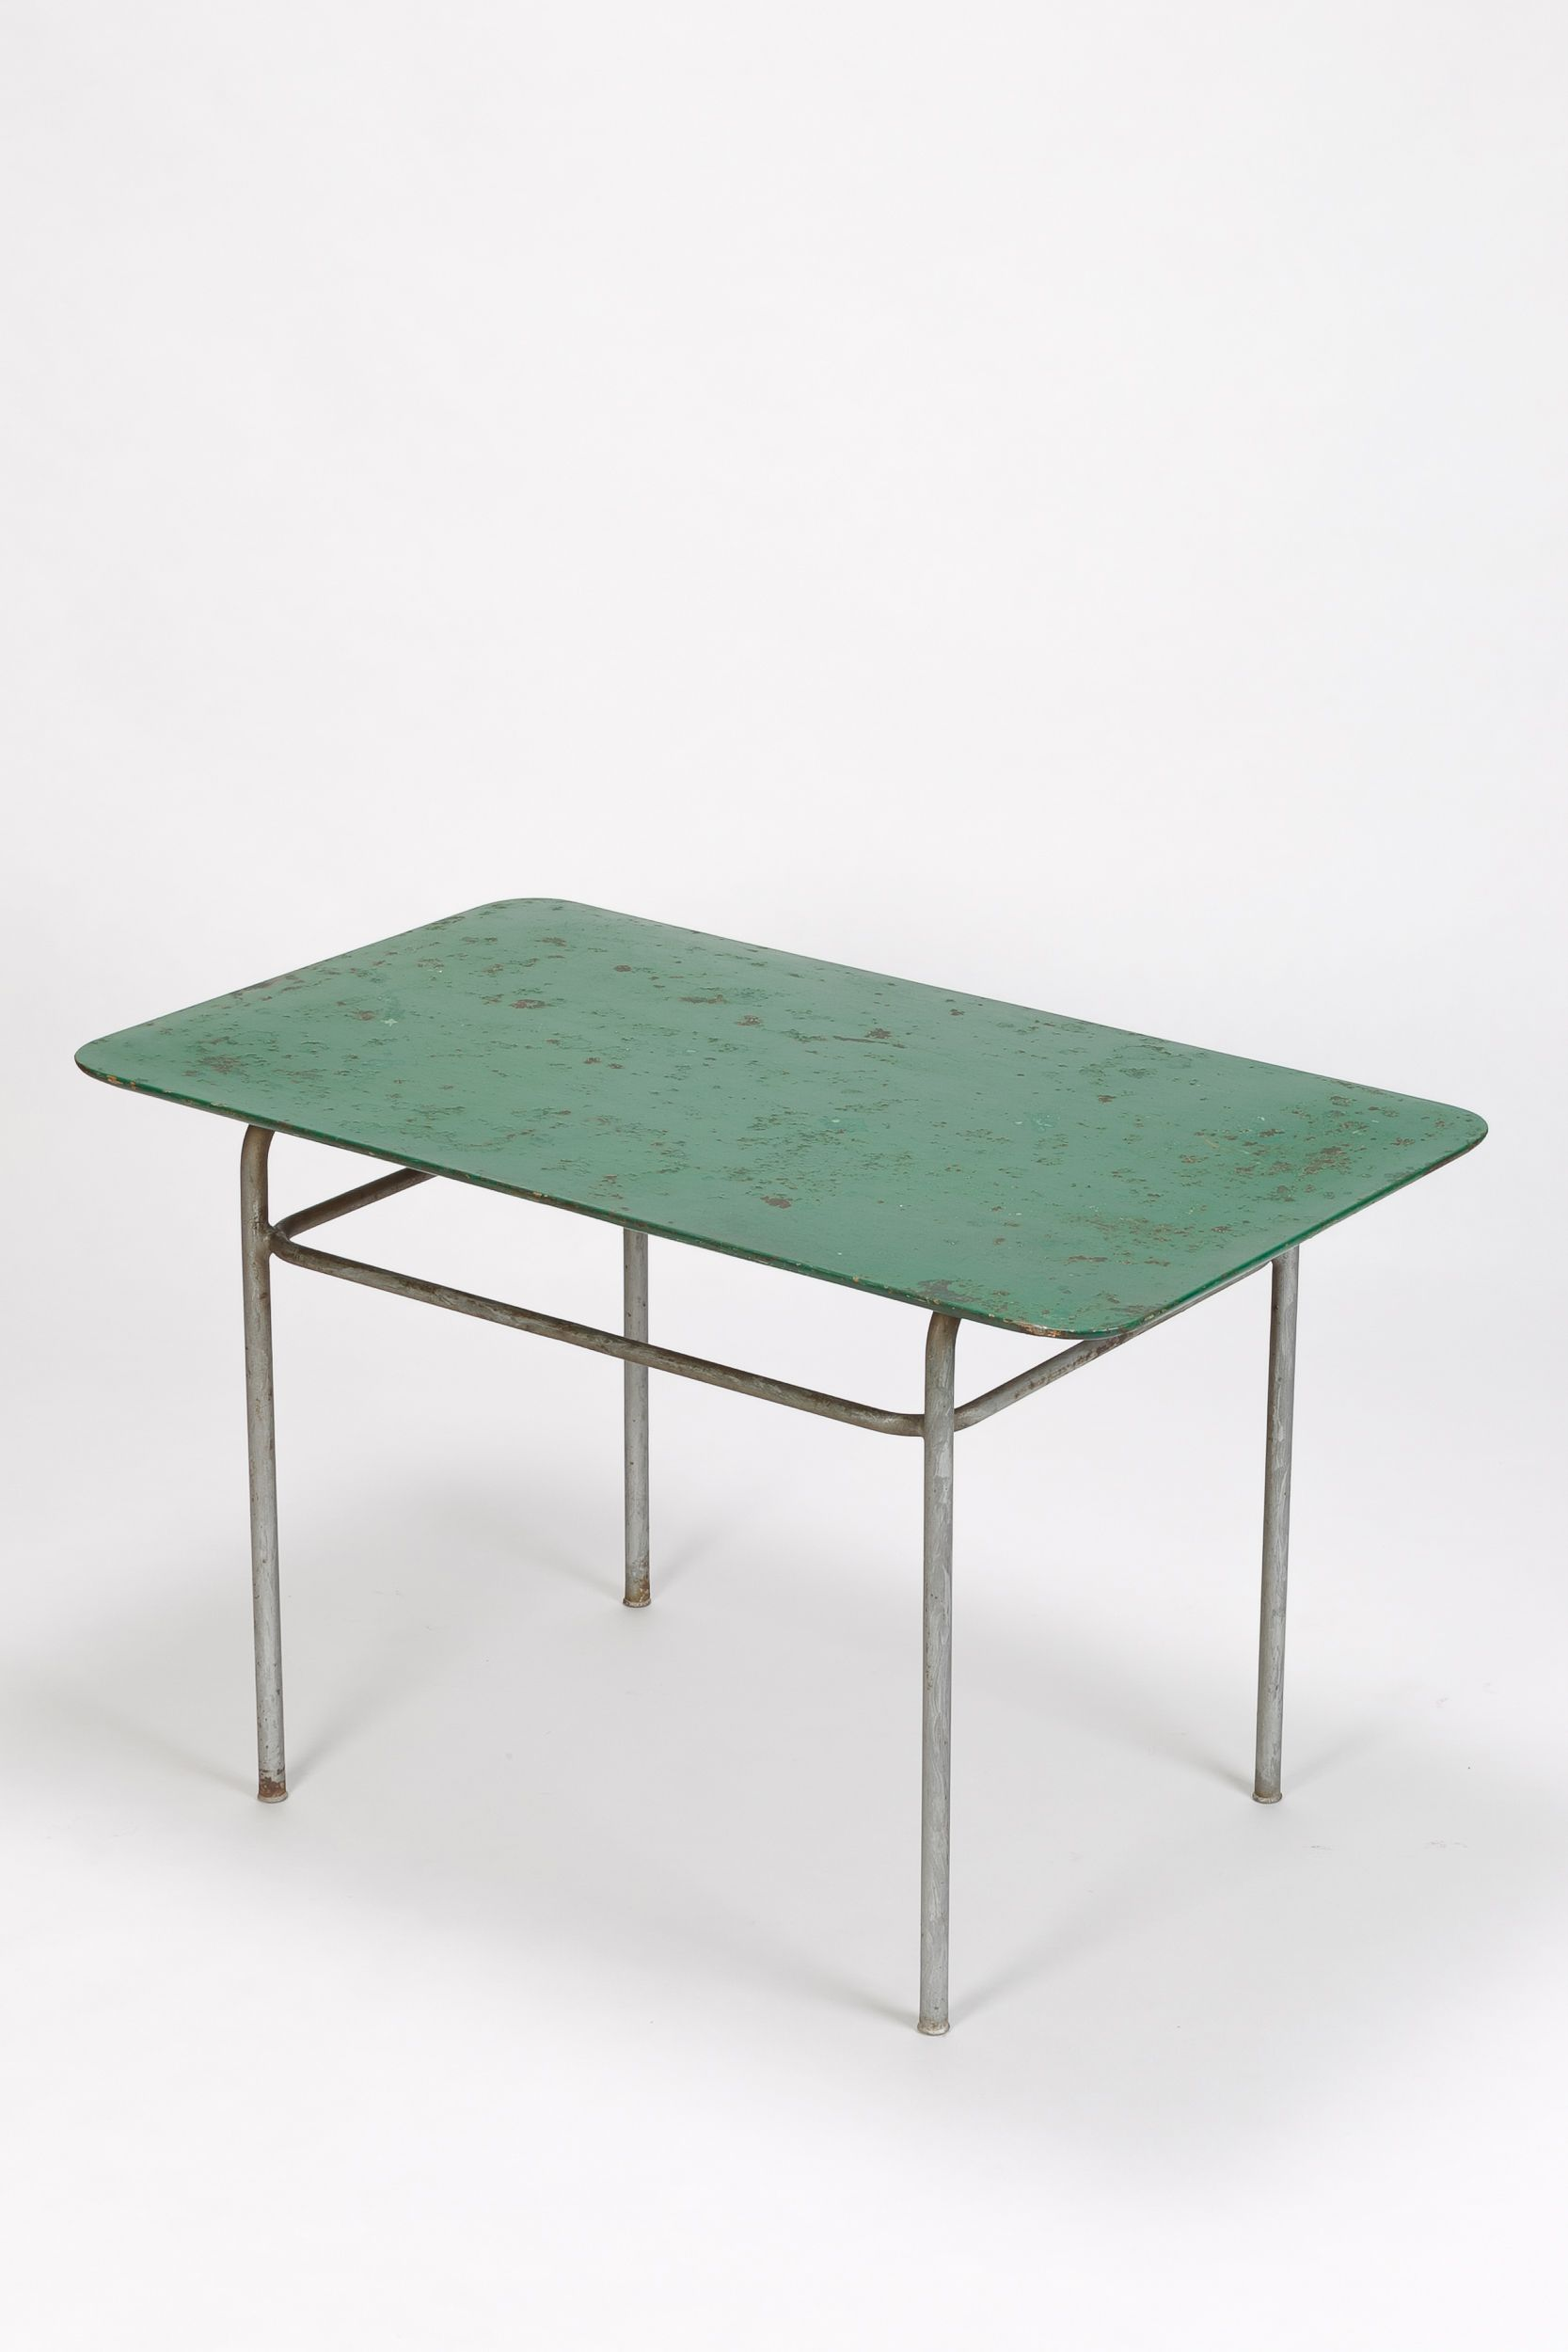 40'sOkay Table Green Garden Bigla ArtobjectsMeuble tsrdxhQC